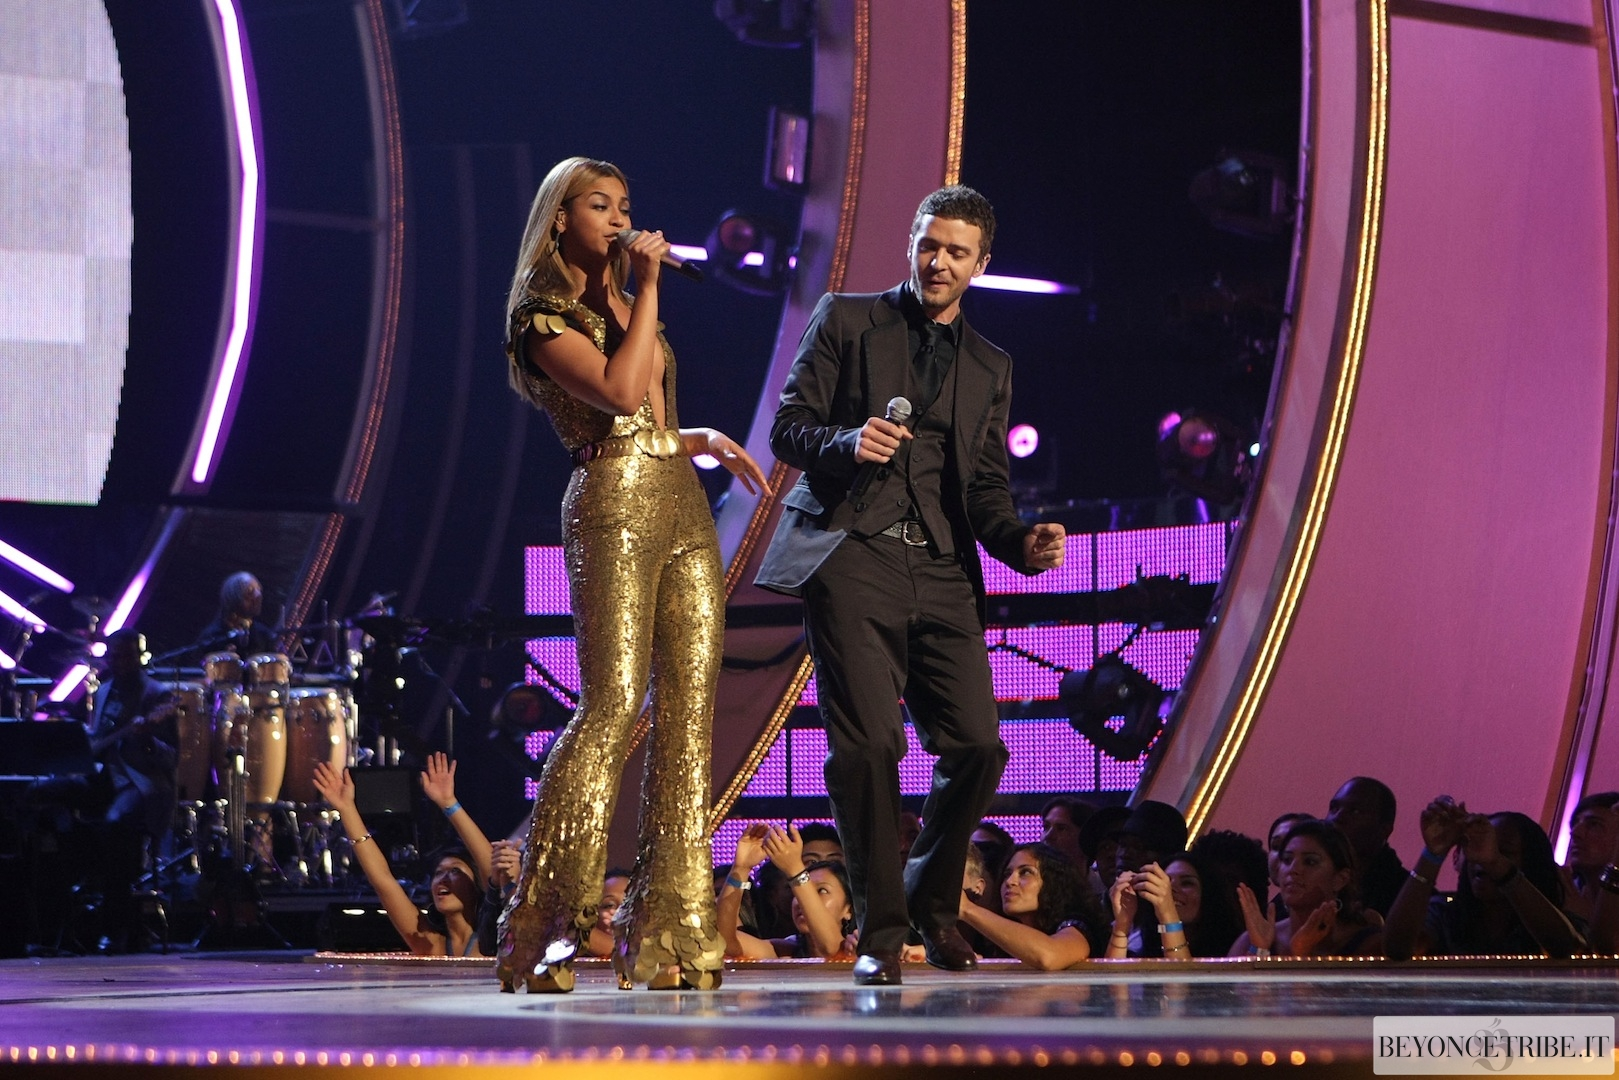 Beyonc &amp; Justin Timberlake Live at Fashion Rocks - NY 5 Sept 2008 HQ